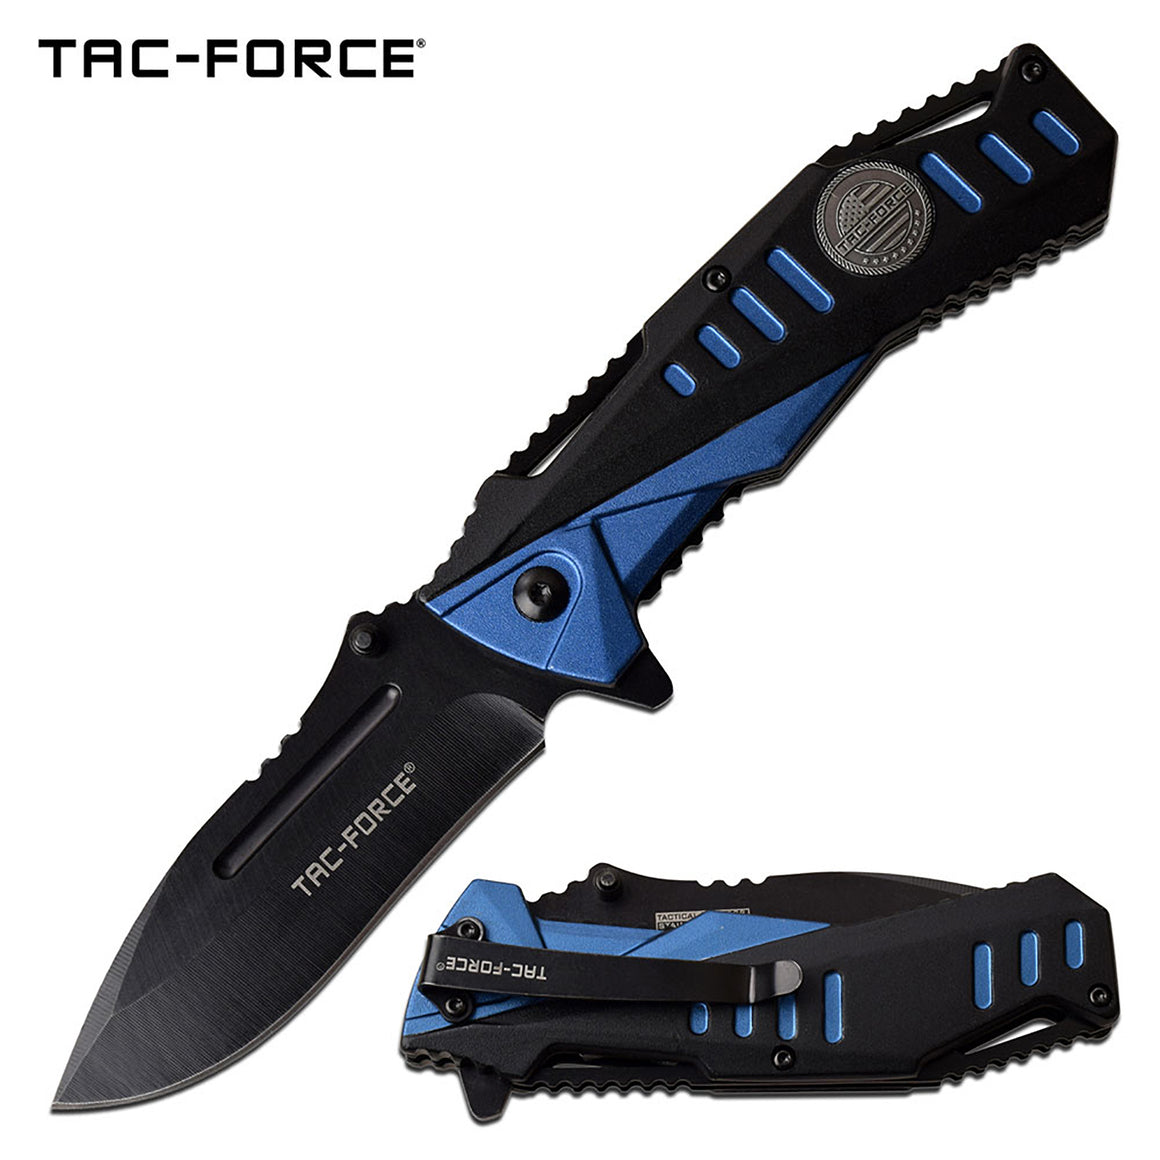 Tac-Force TF-988BL Spring Assisted Knife